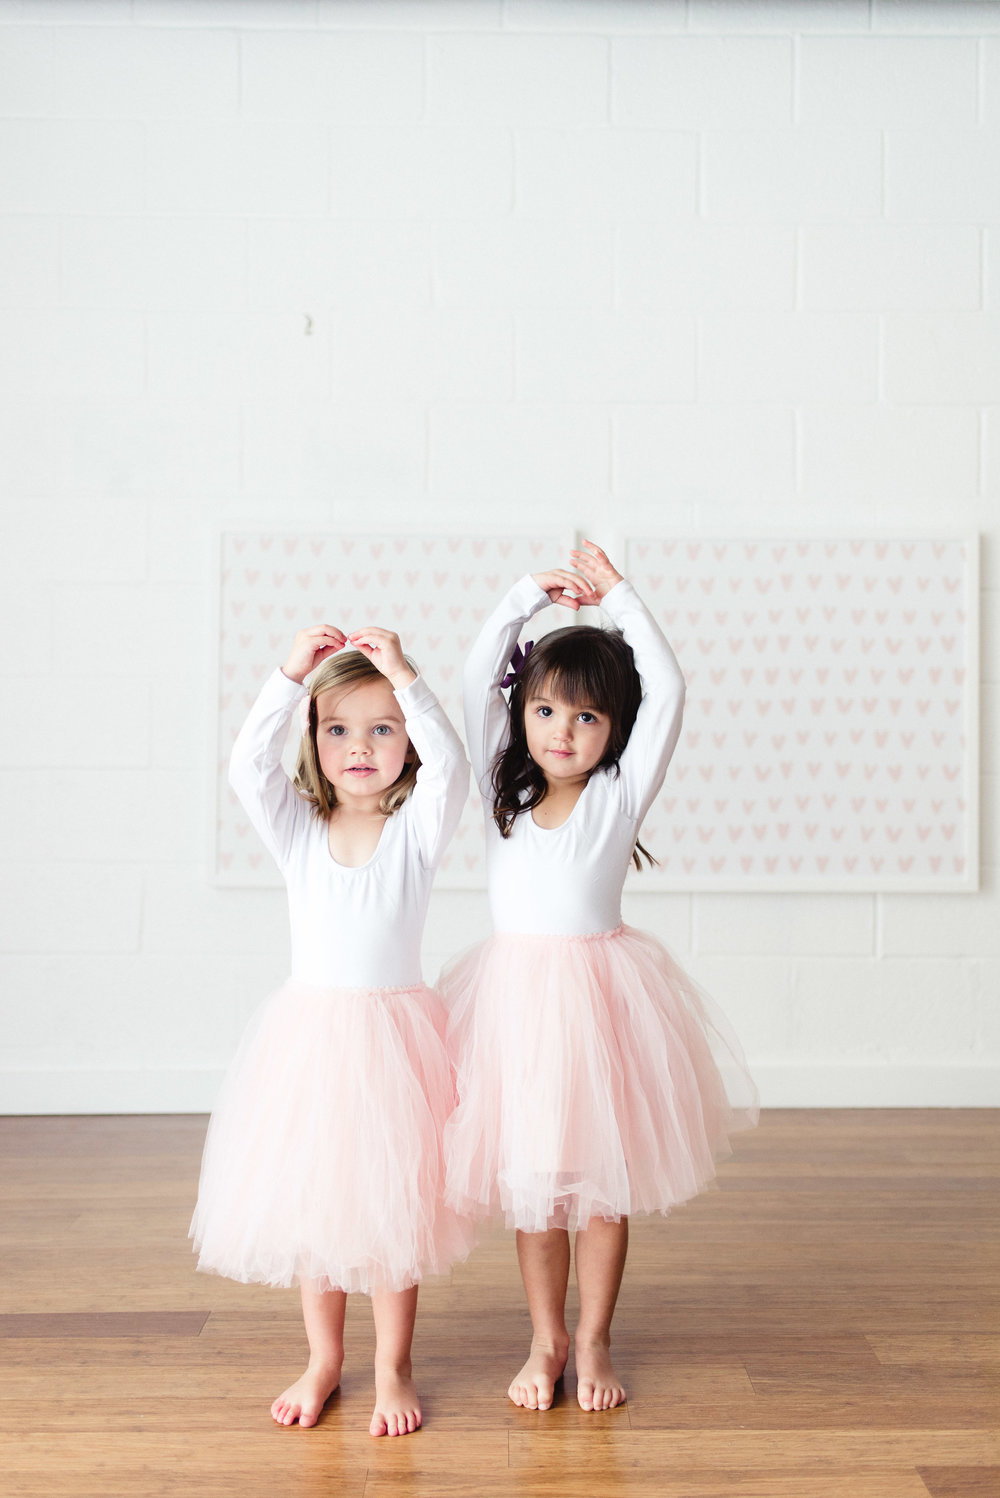 Tutu skirt    Ballet leotard